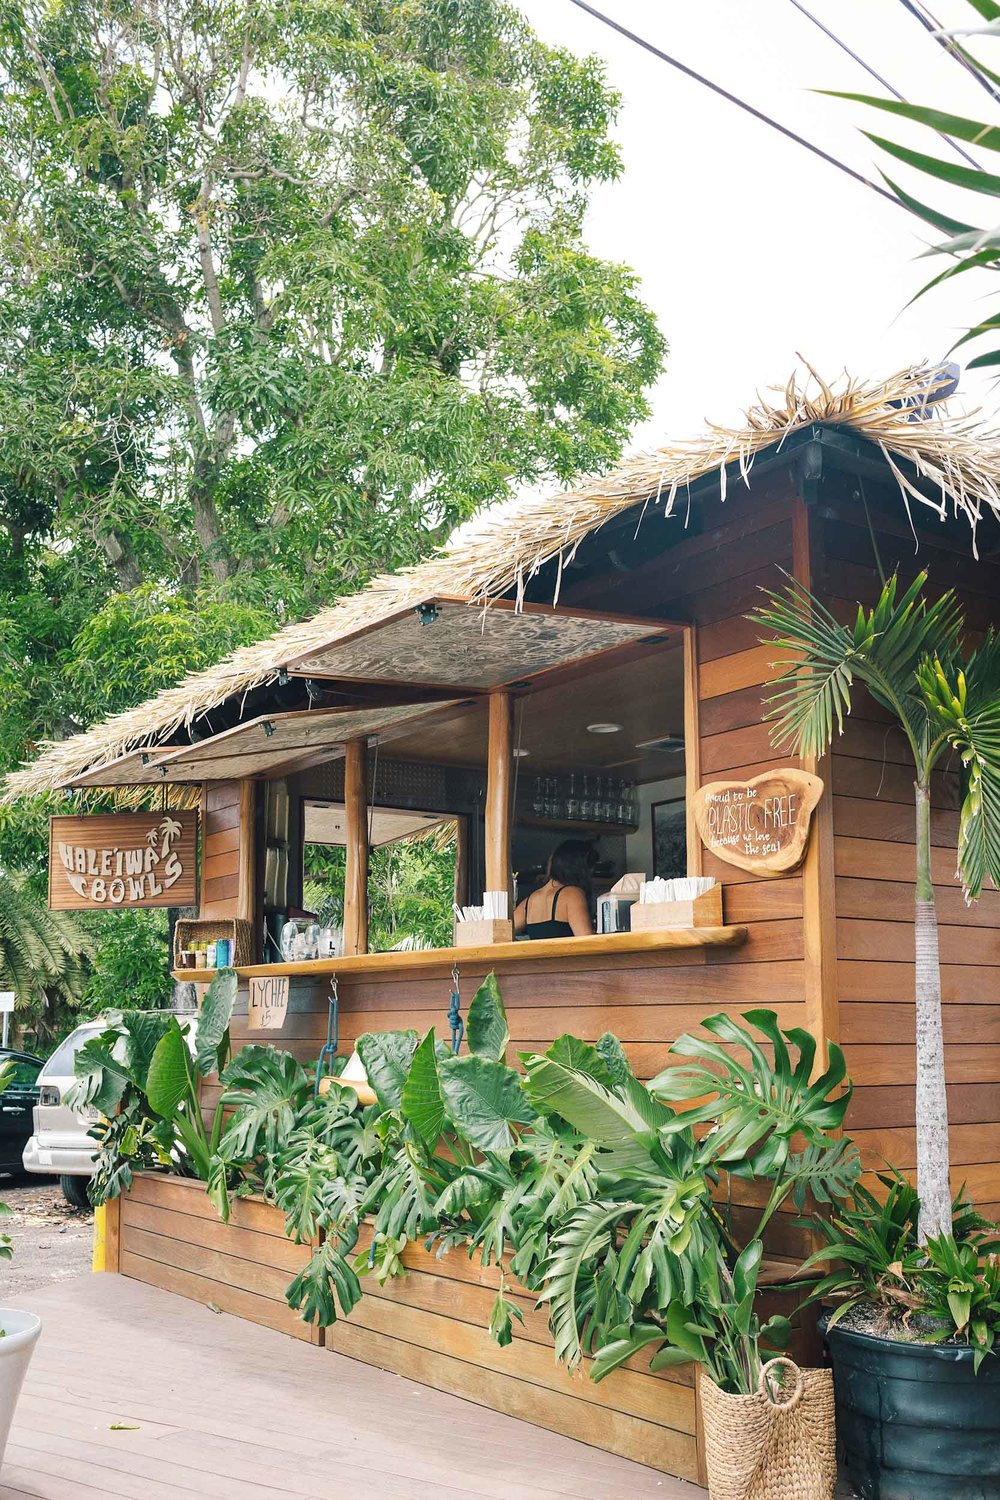 The Haleiwa Bowls shack in Haleiwa on Oahu's North Shore